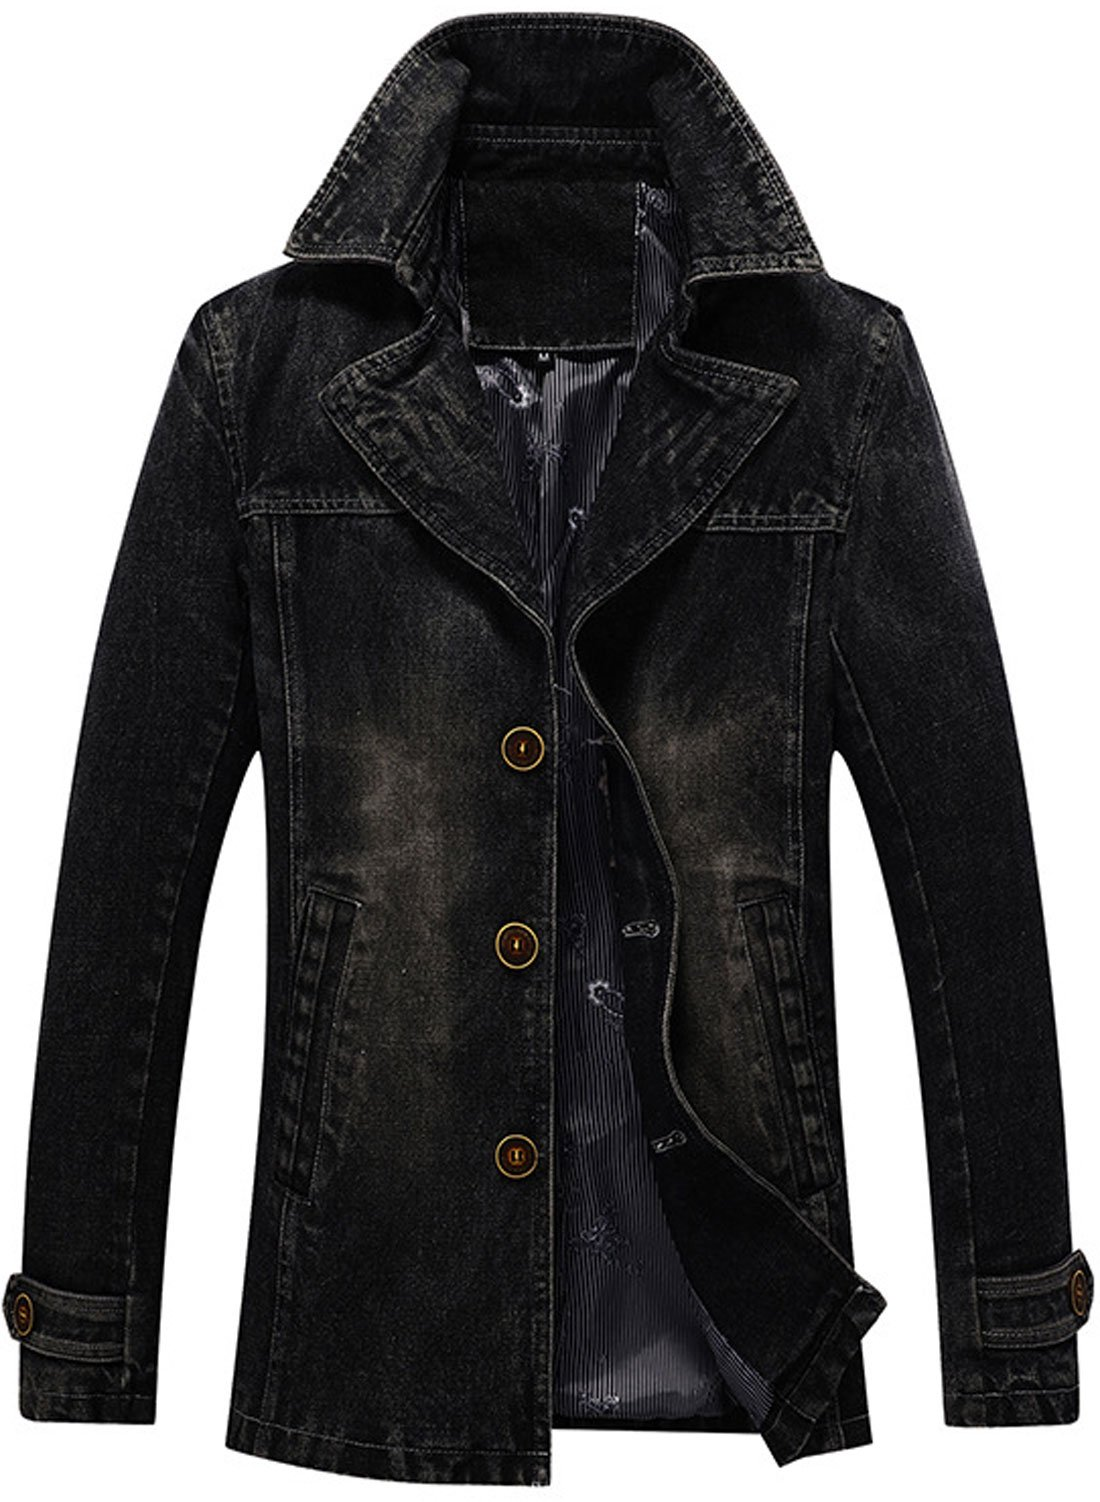 Chouyatou Men's Classic Notched Collar Single Breasted Rugged Wear Lined Denim Trucker Jacket (Black, Large)